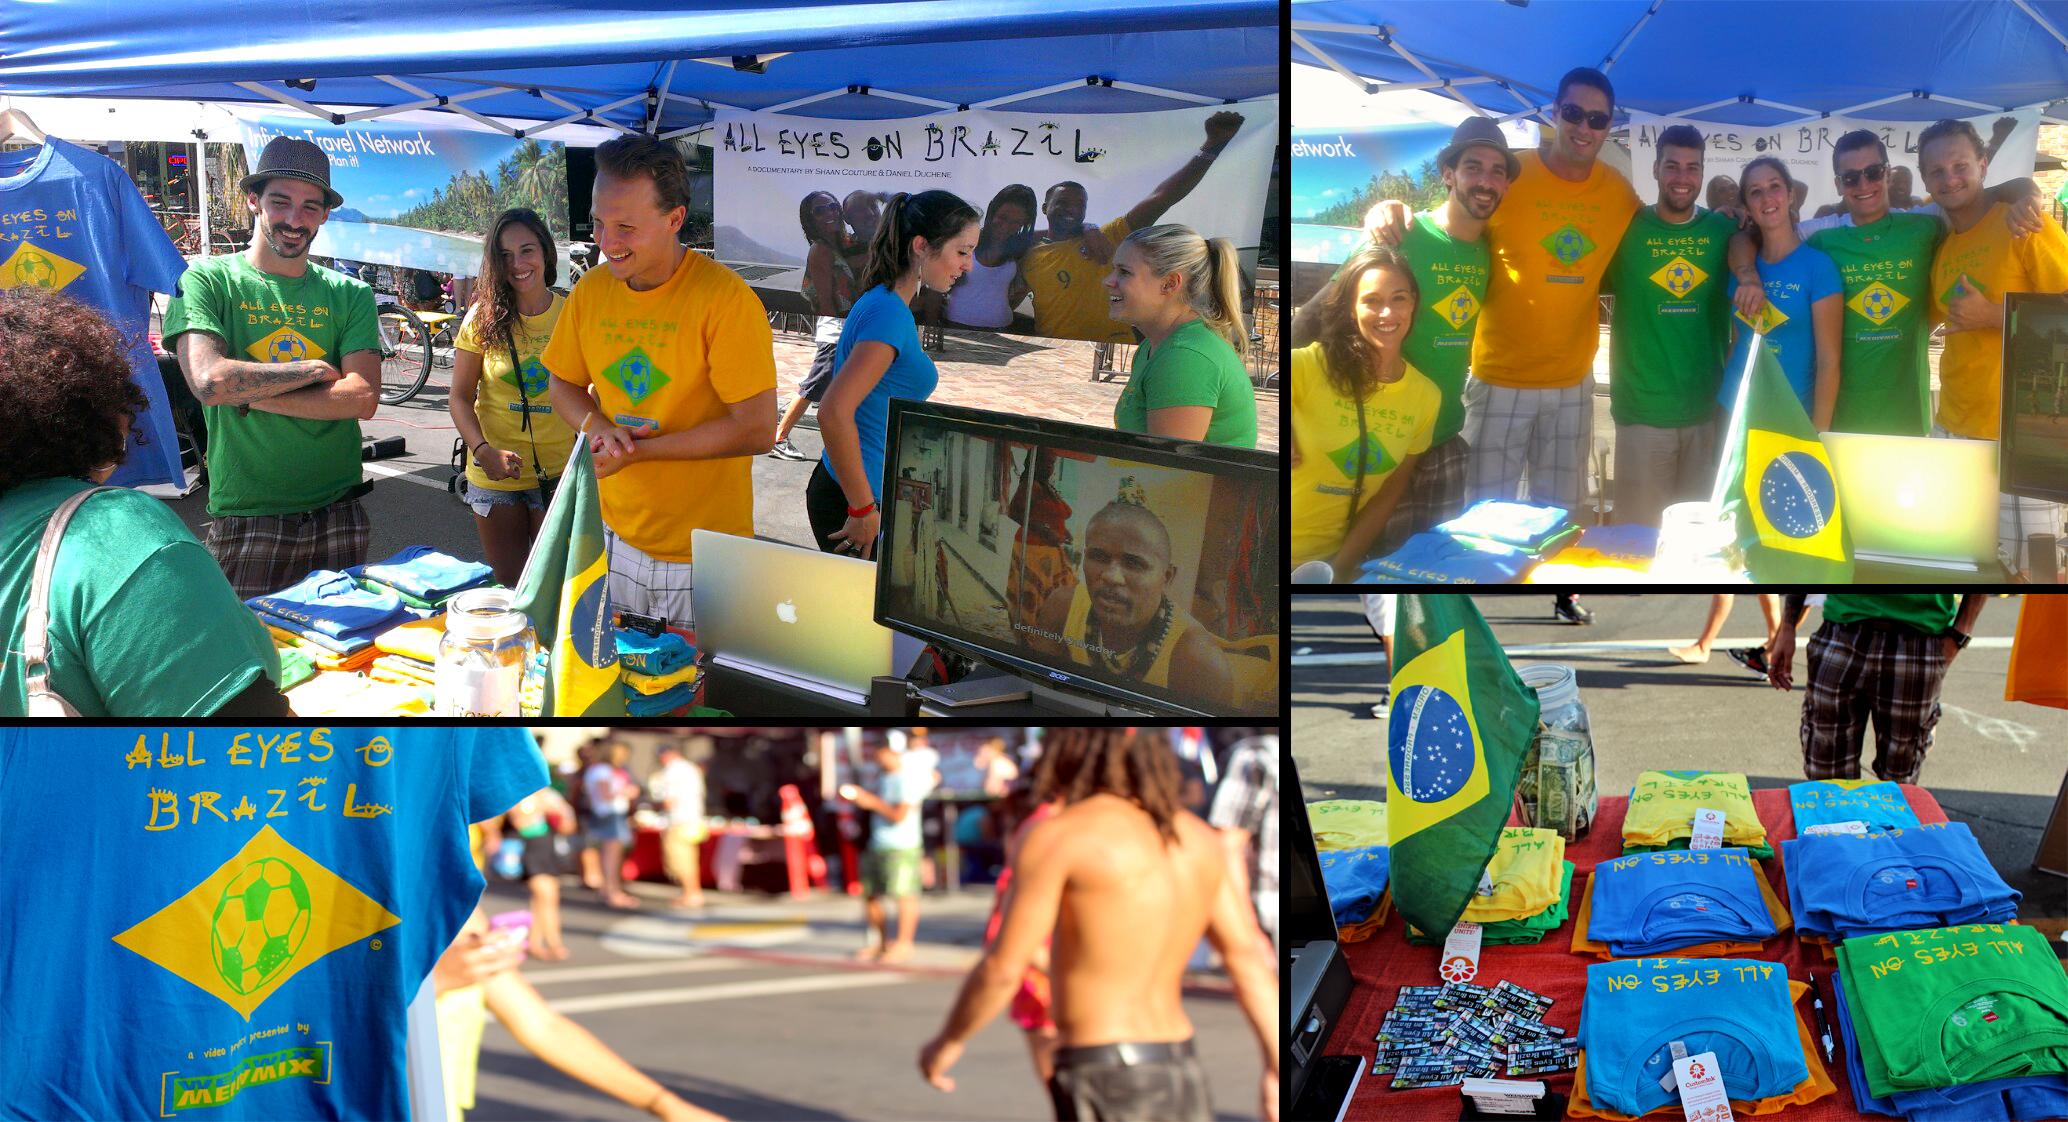 Shirt design san diego - The All Eyes On Brazil Team During The 2013 San Diego Brazilian Day T Shirt